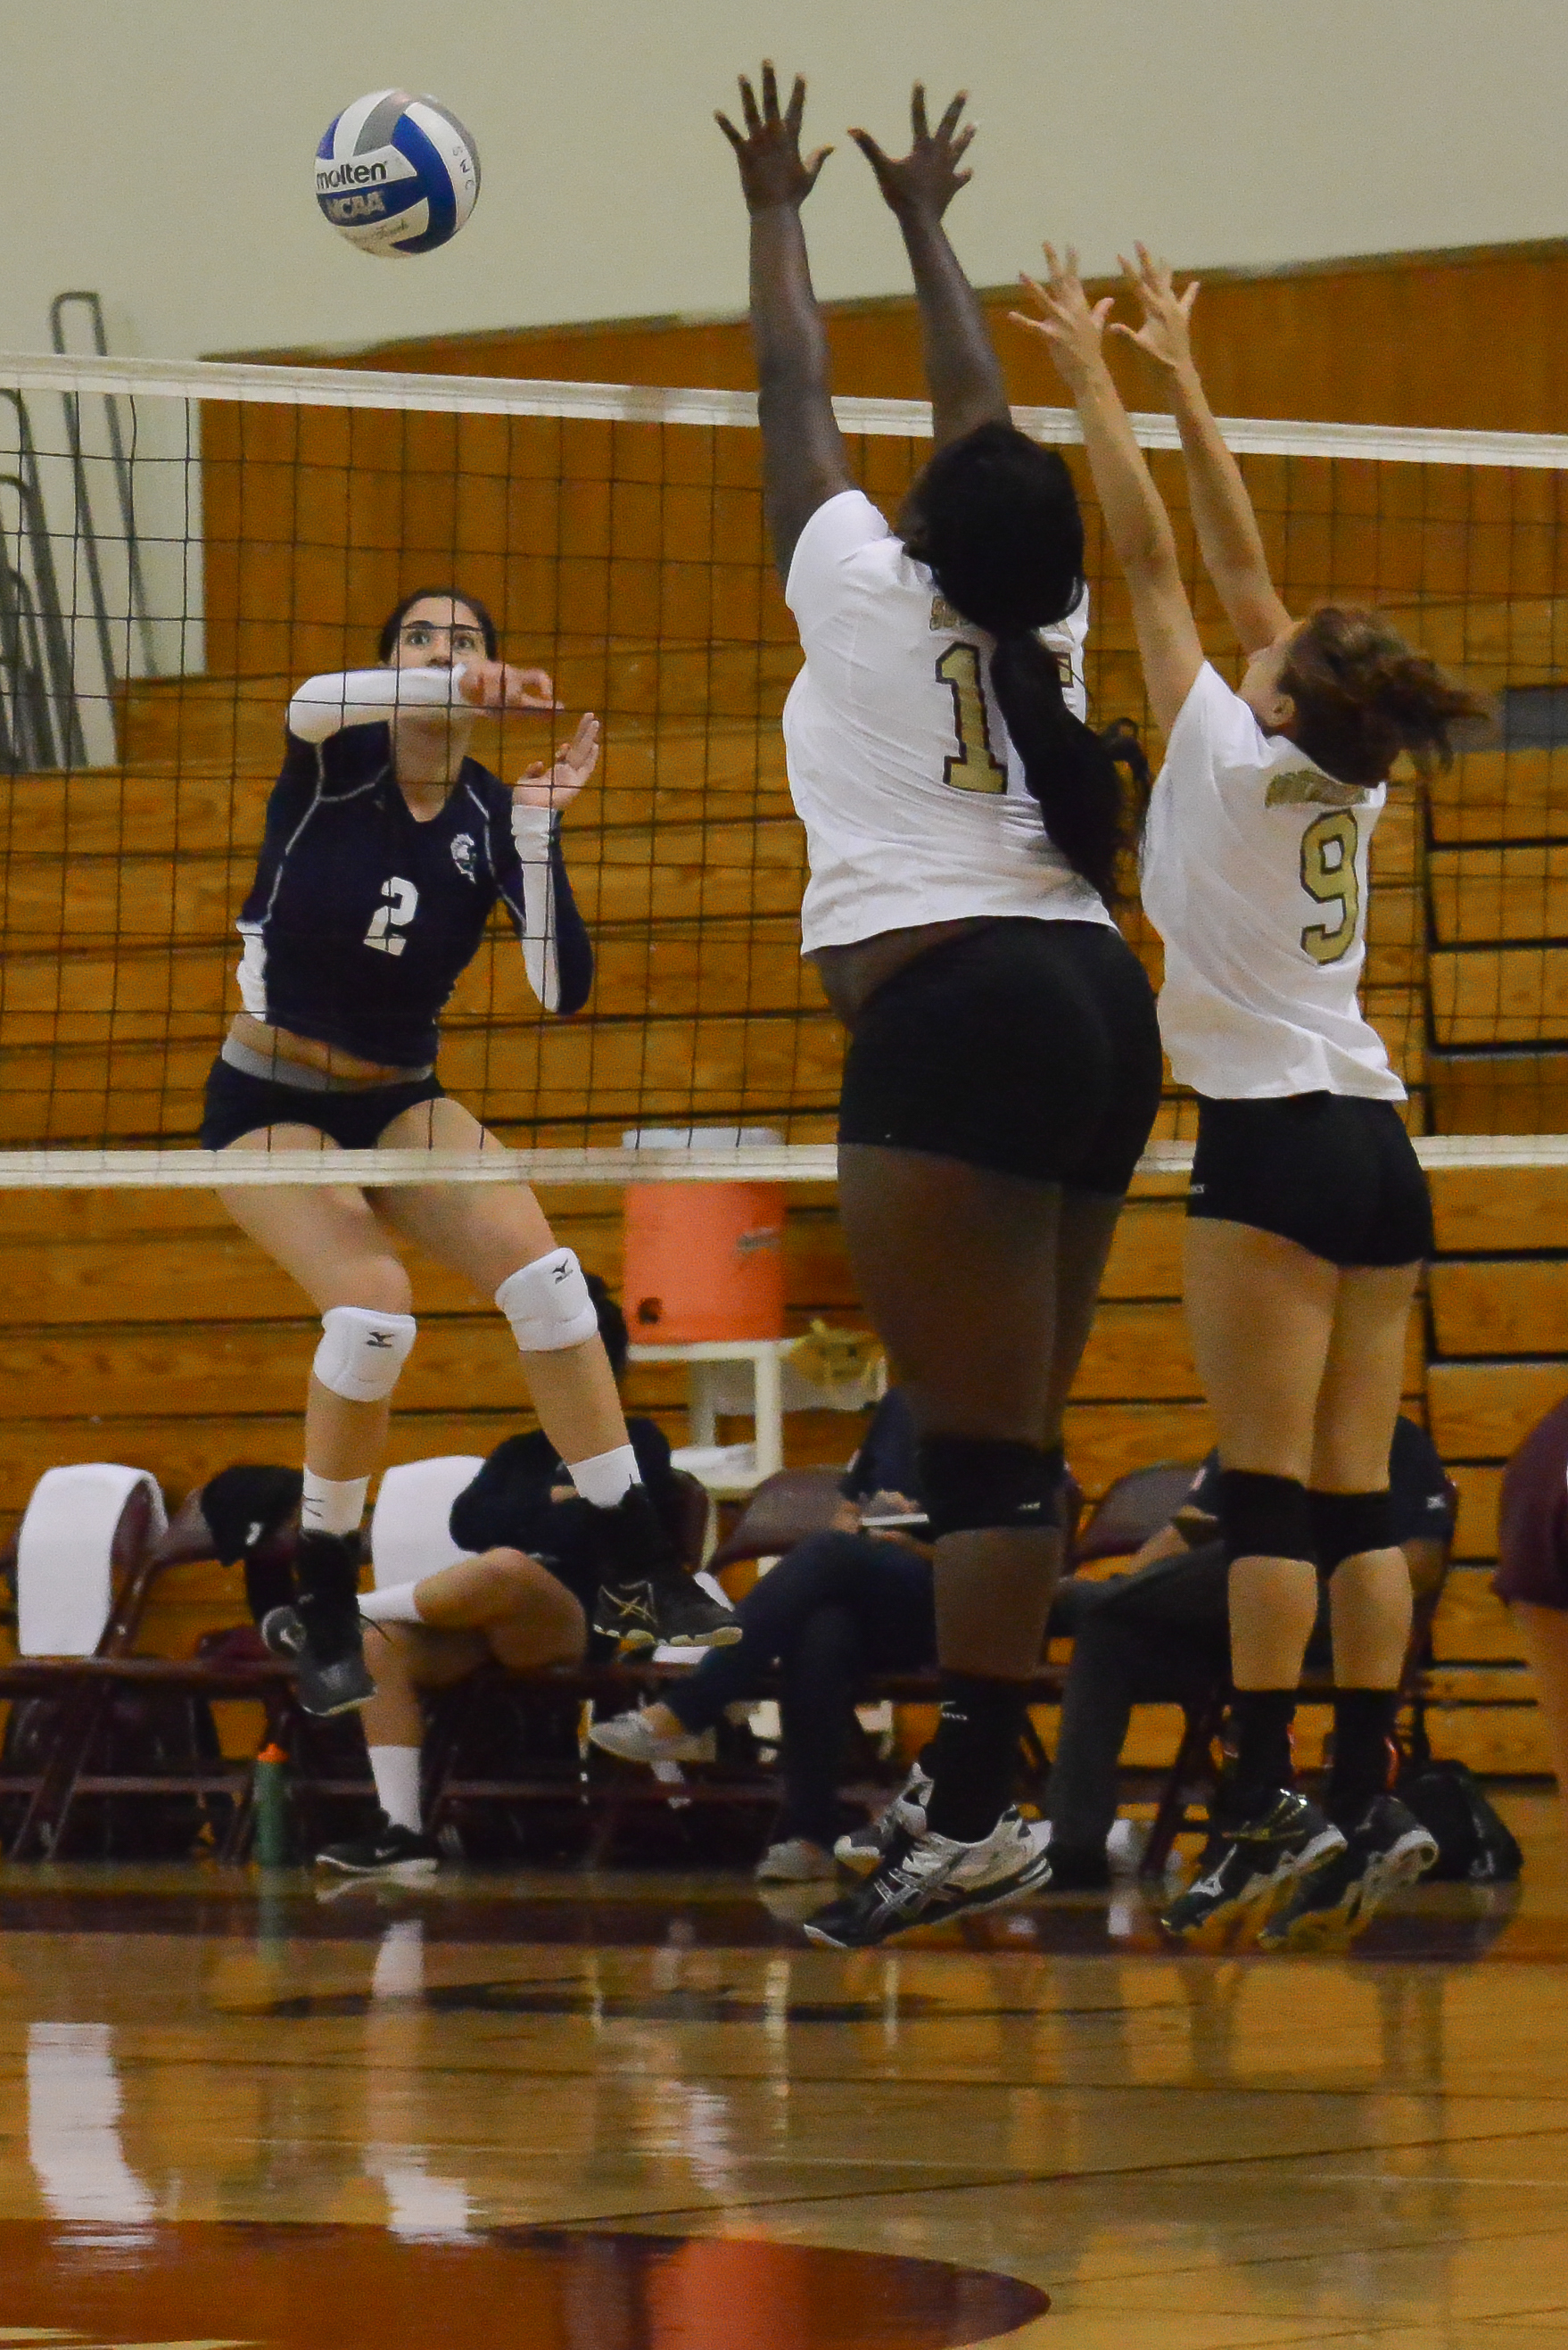 Volleyball block lied